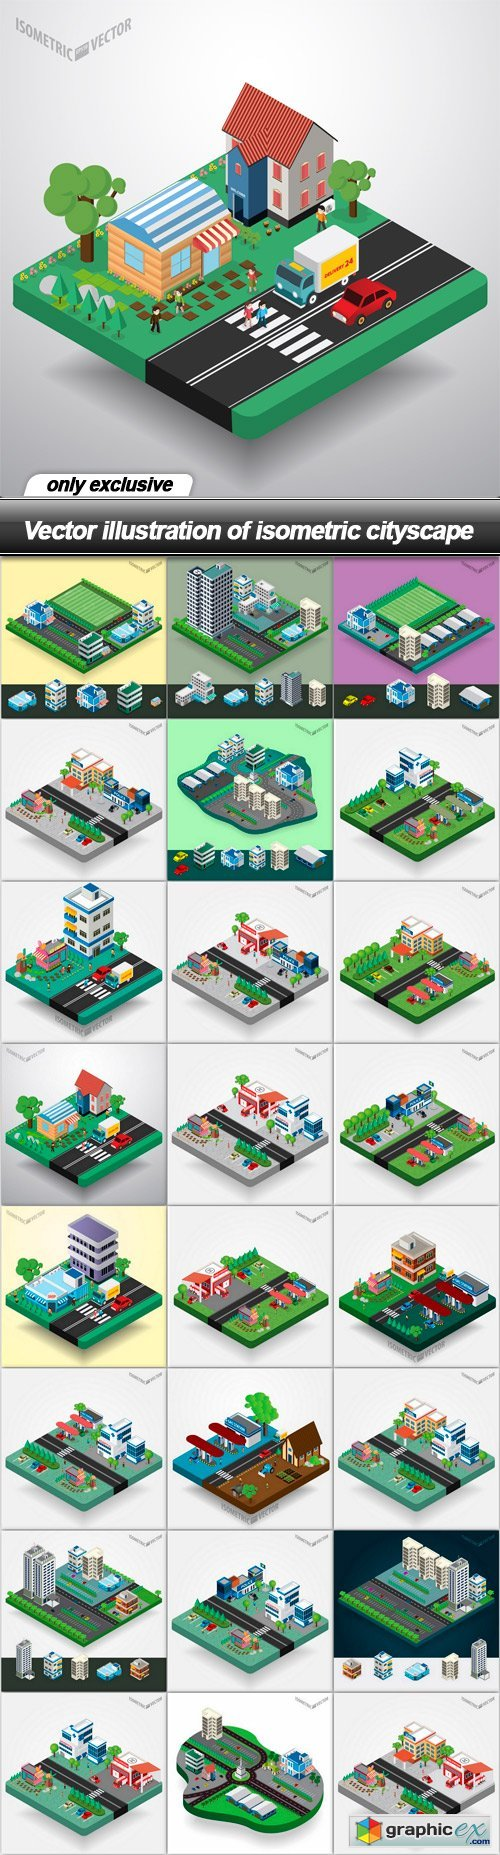 illustration of isometric cityscape - 24 EPS